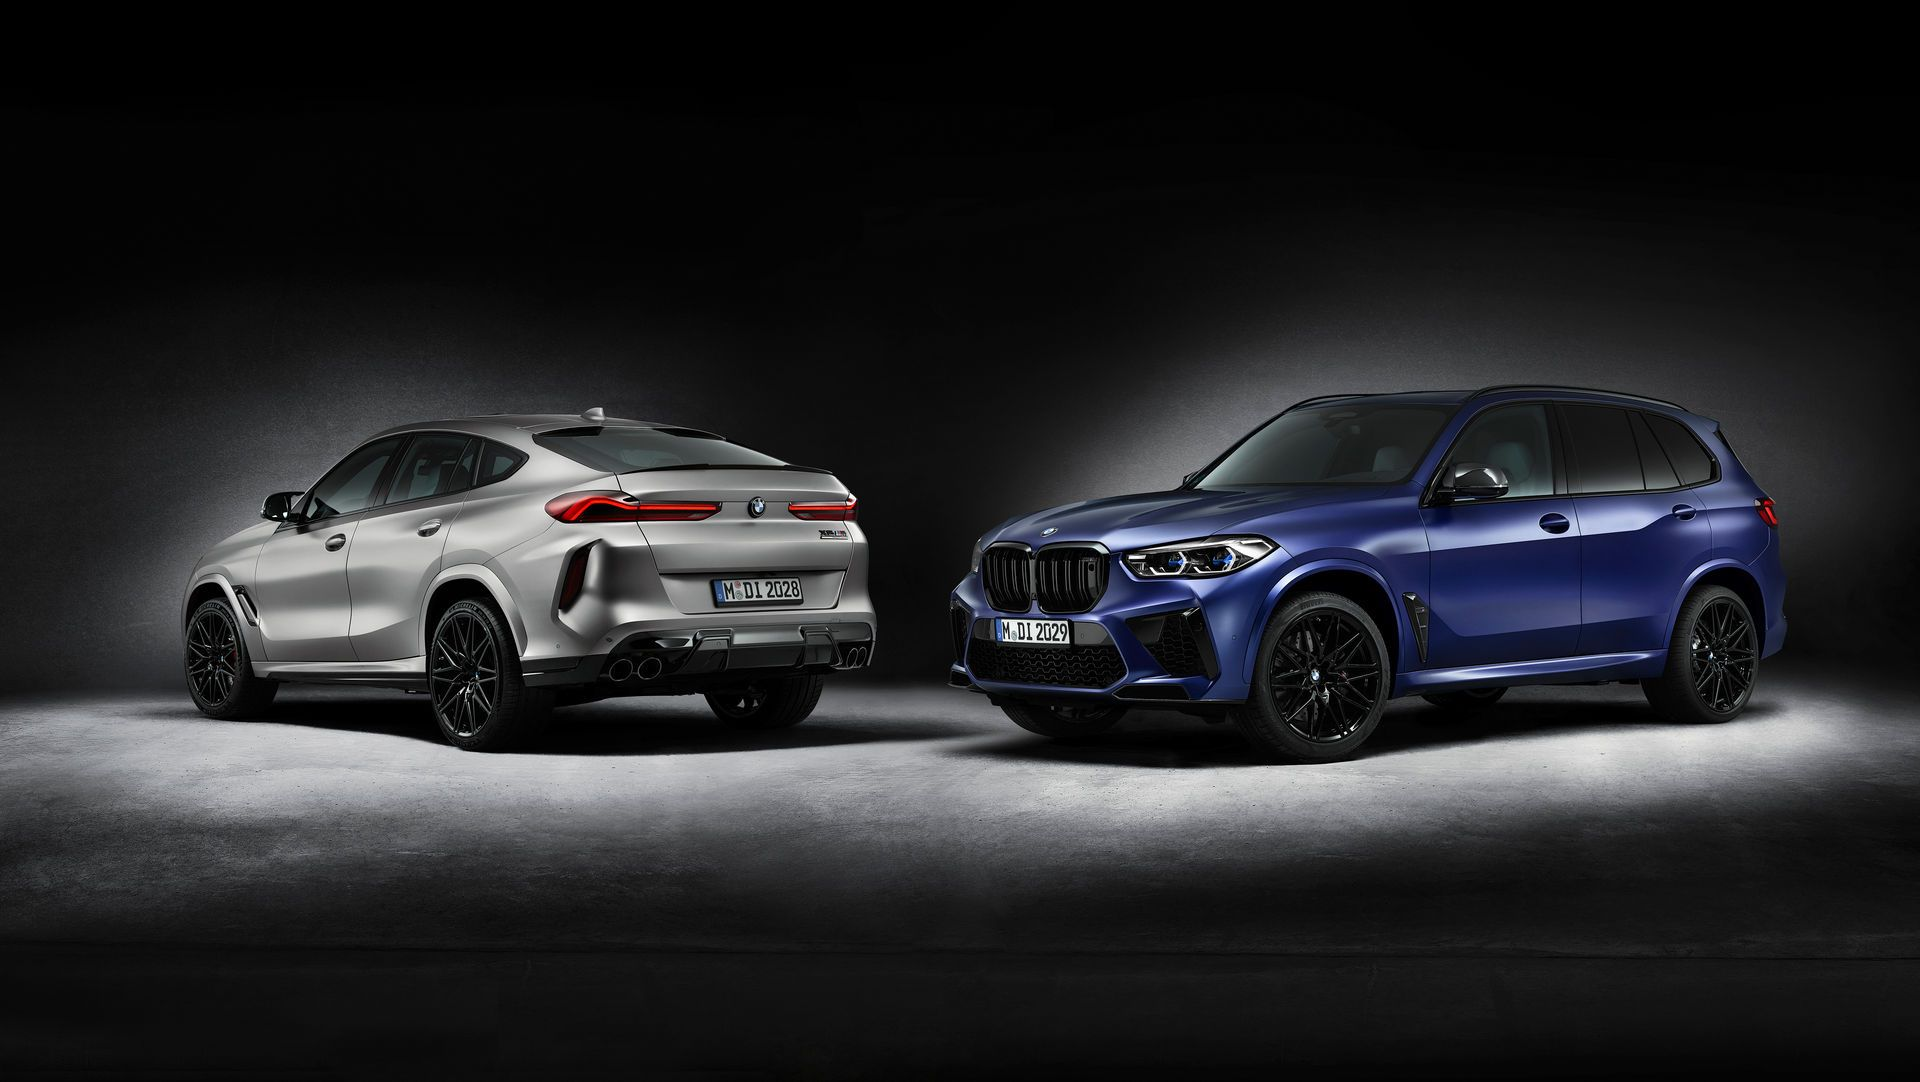 BMW-X5-M-X6-M-Competition-First-Editions-1